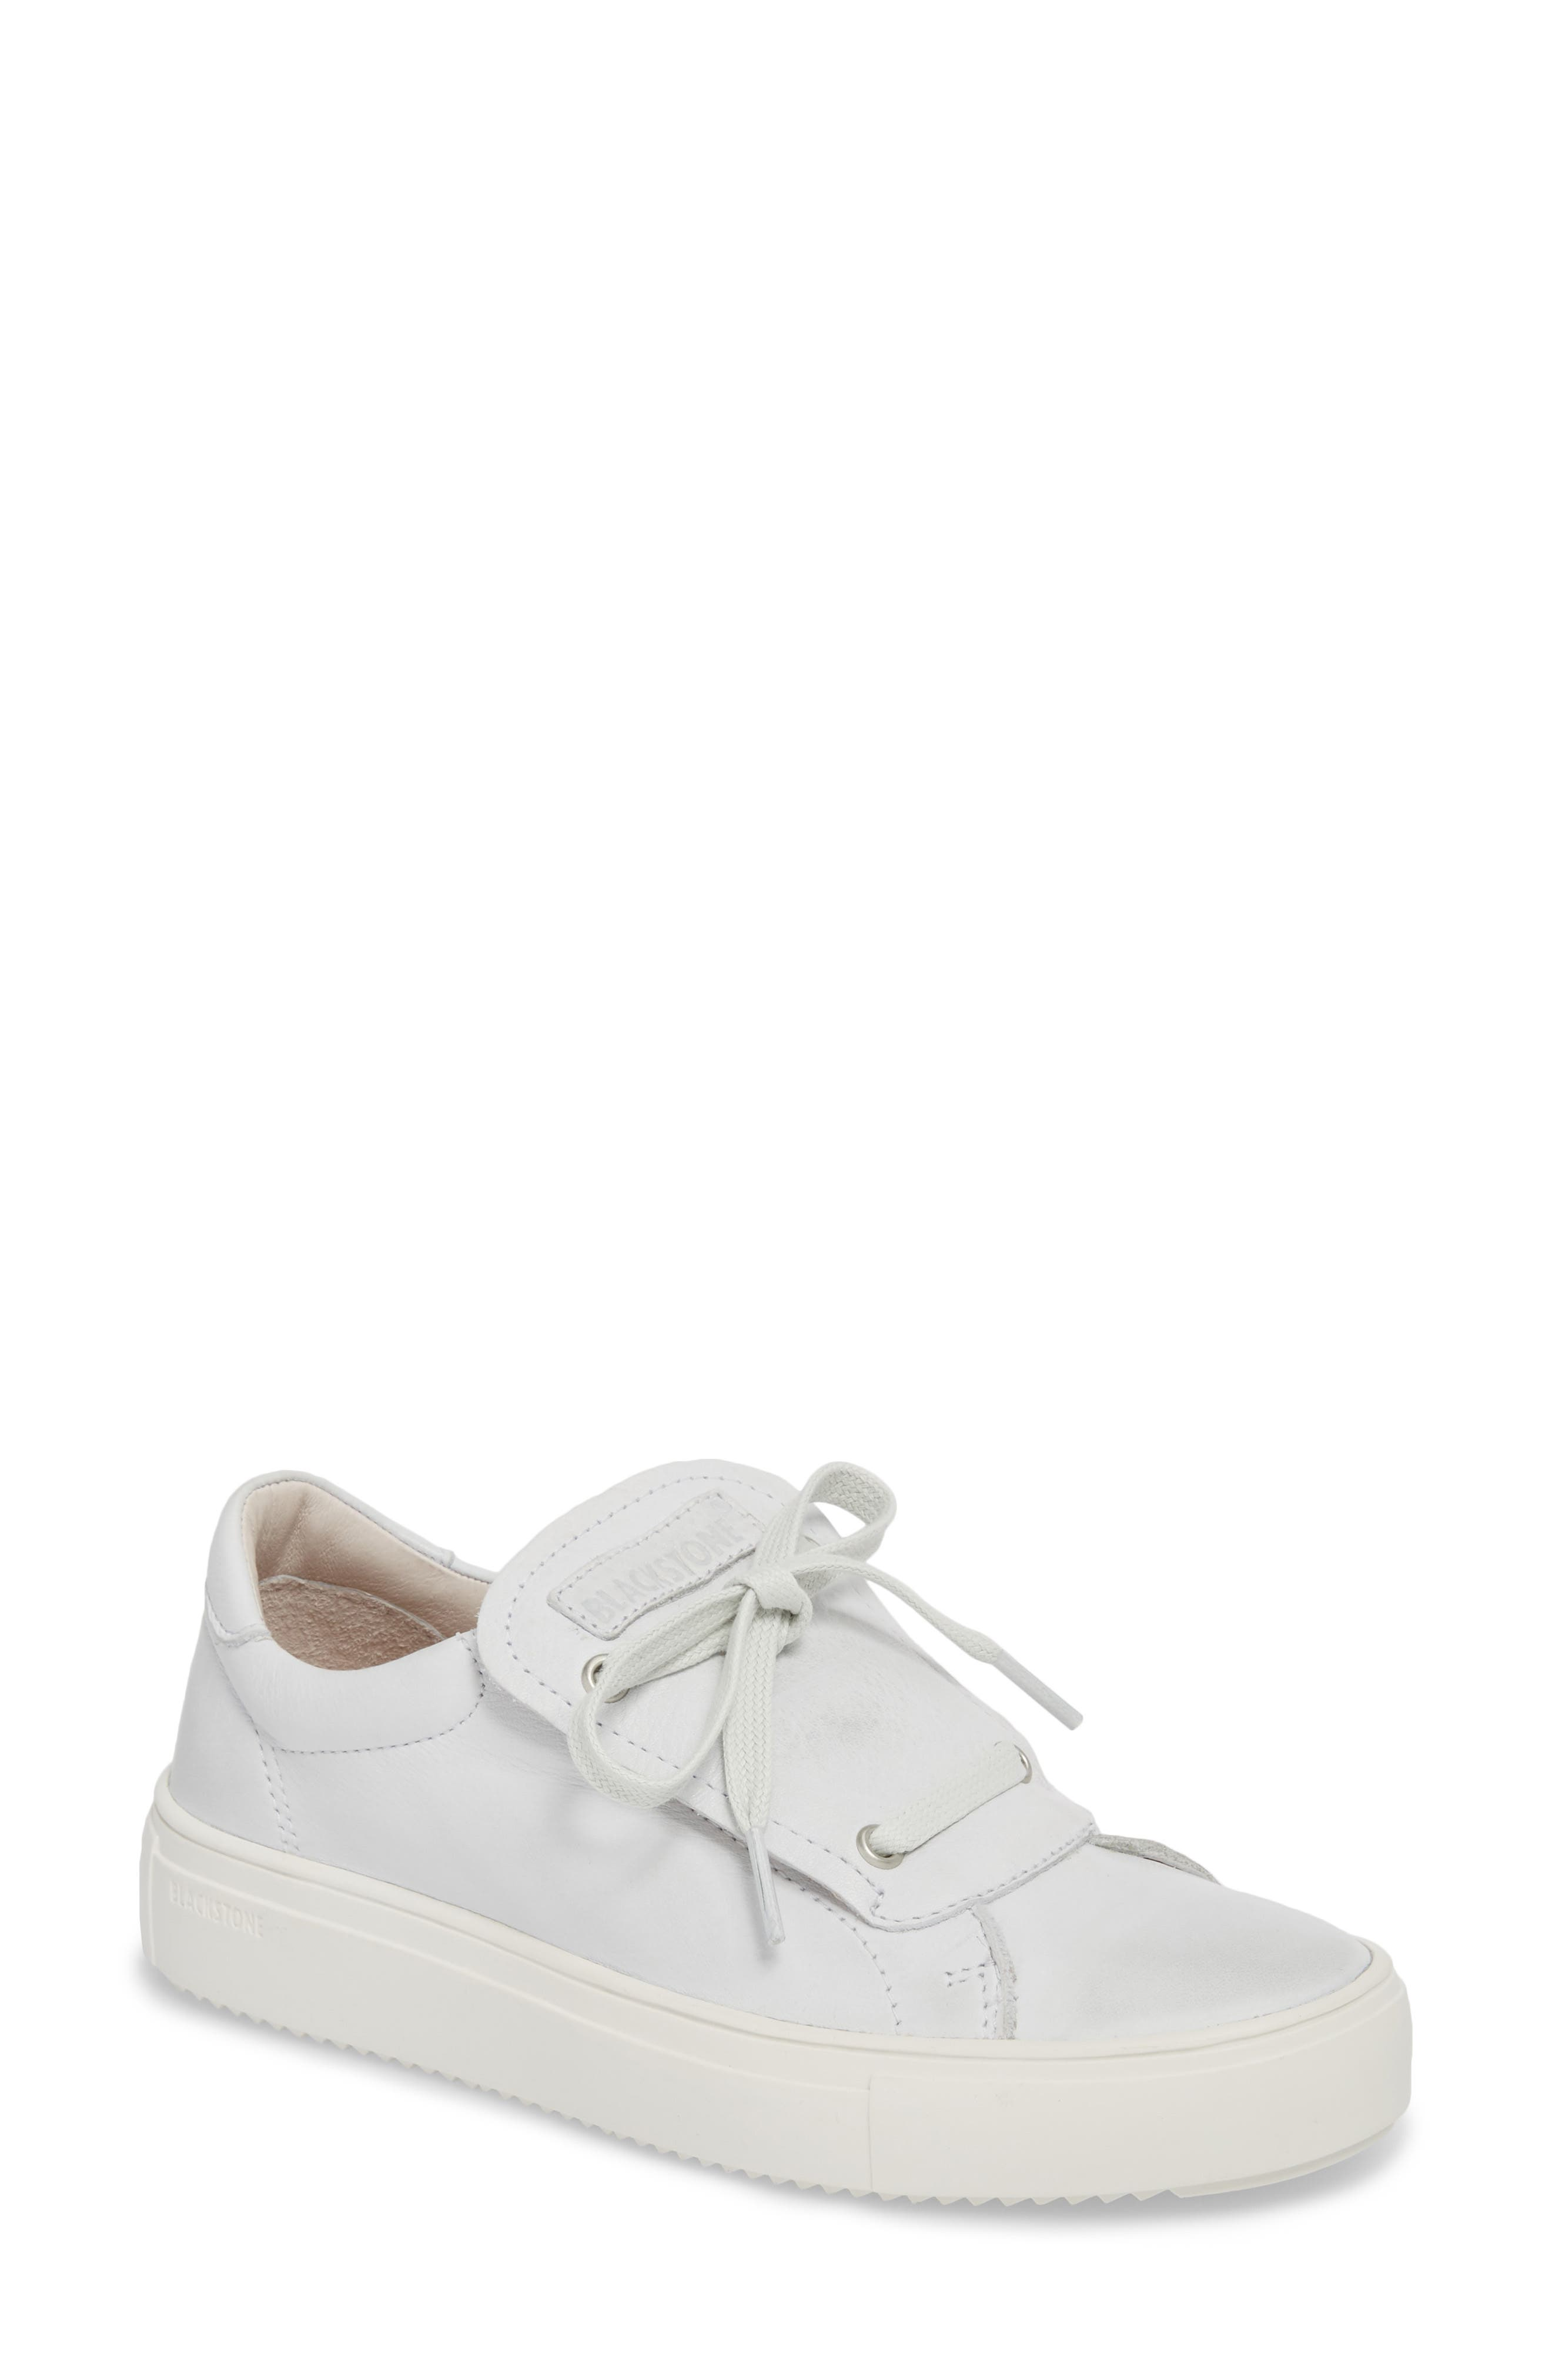 PL72 External Tongue Sneaker,                             Main thumbnail 1, color,                             White Leather